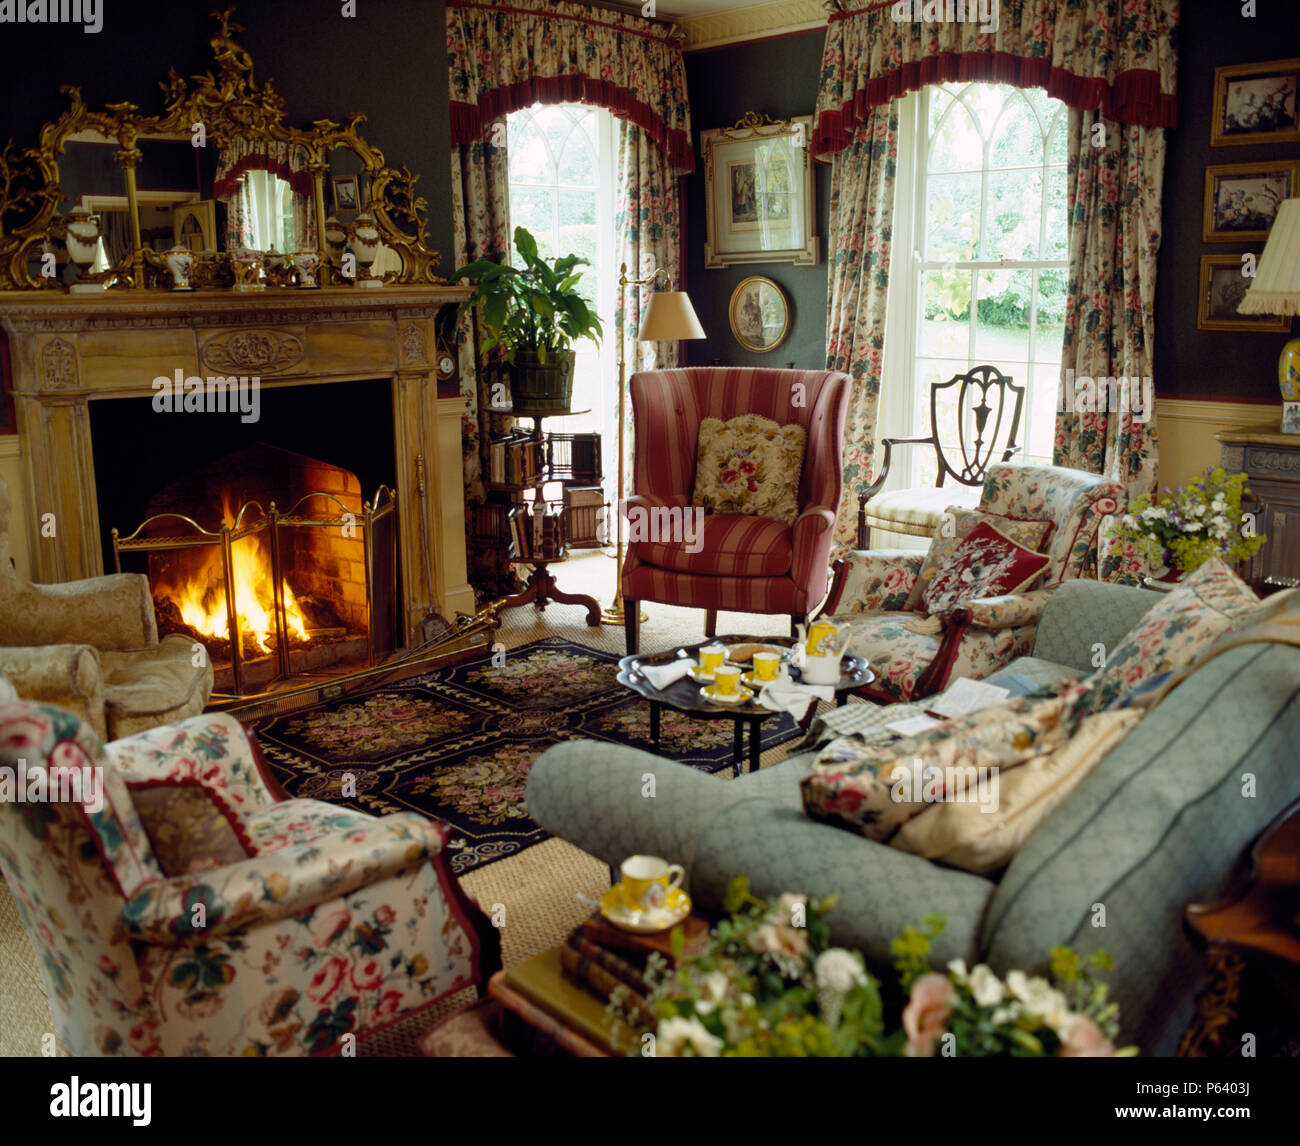 Pale Blue Sofa And Pink Wing Chair In Country Sitting Room With Floral Armchairs Arranged Around Fireplace With Lighted Fire Stock Photo Alamy